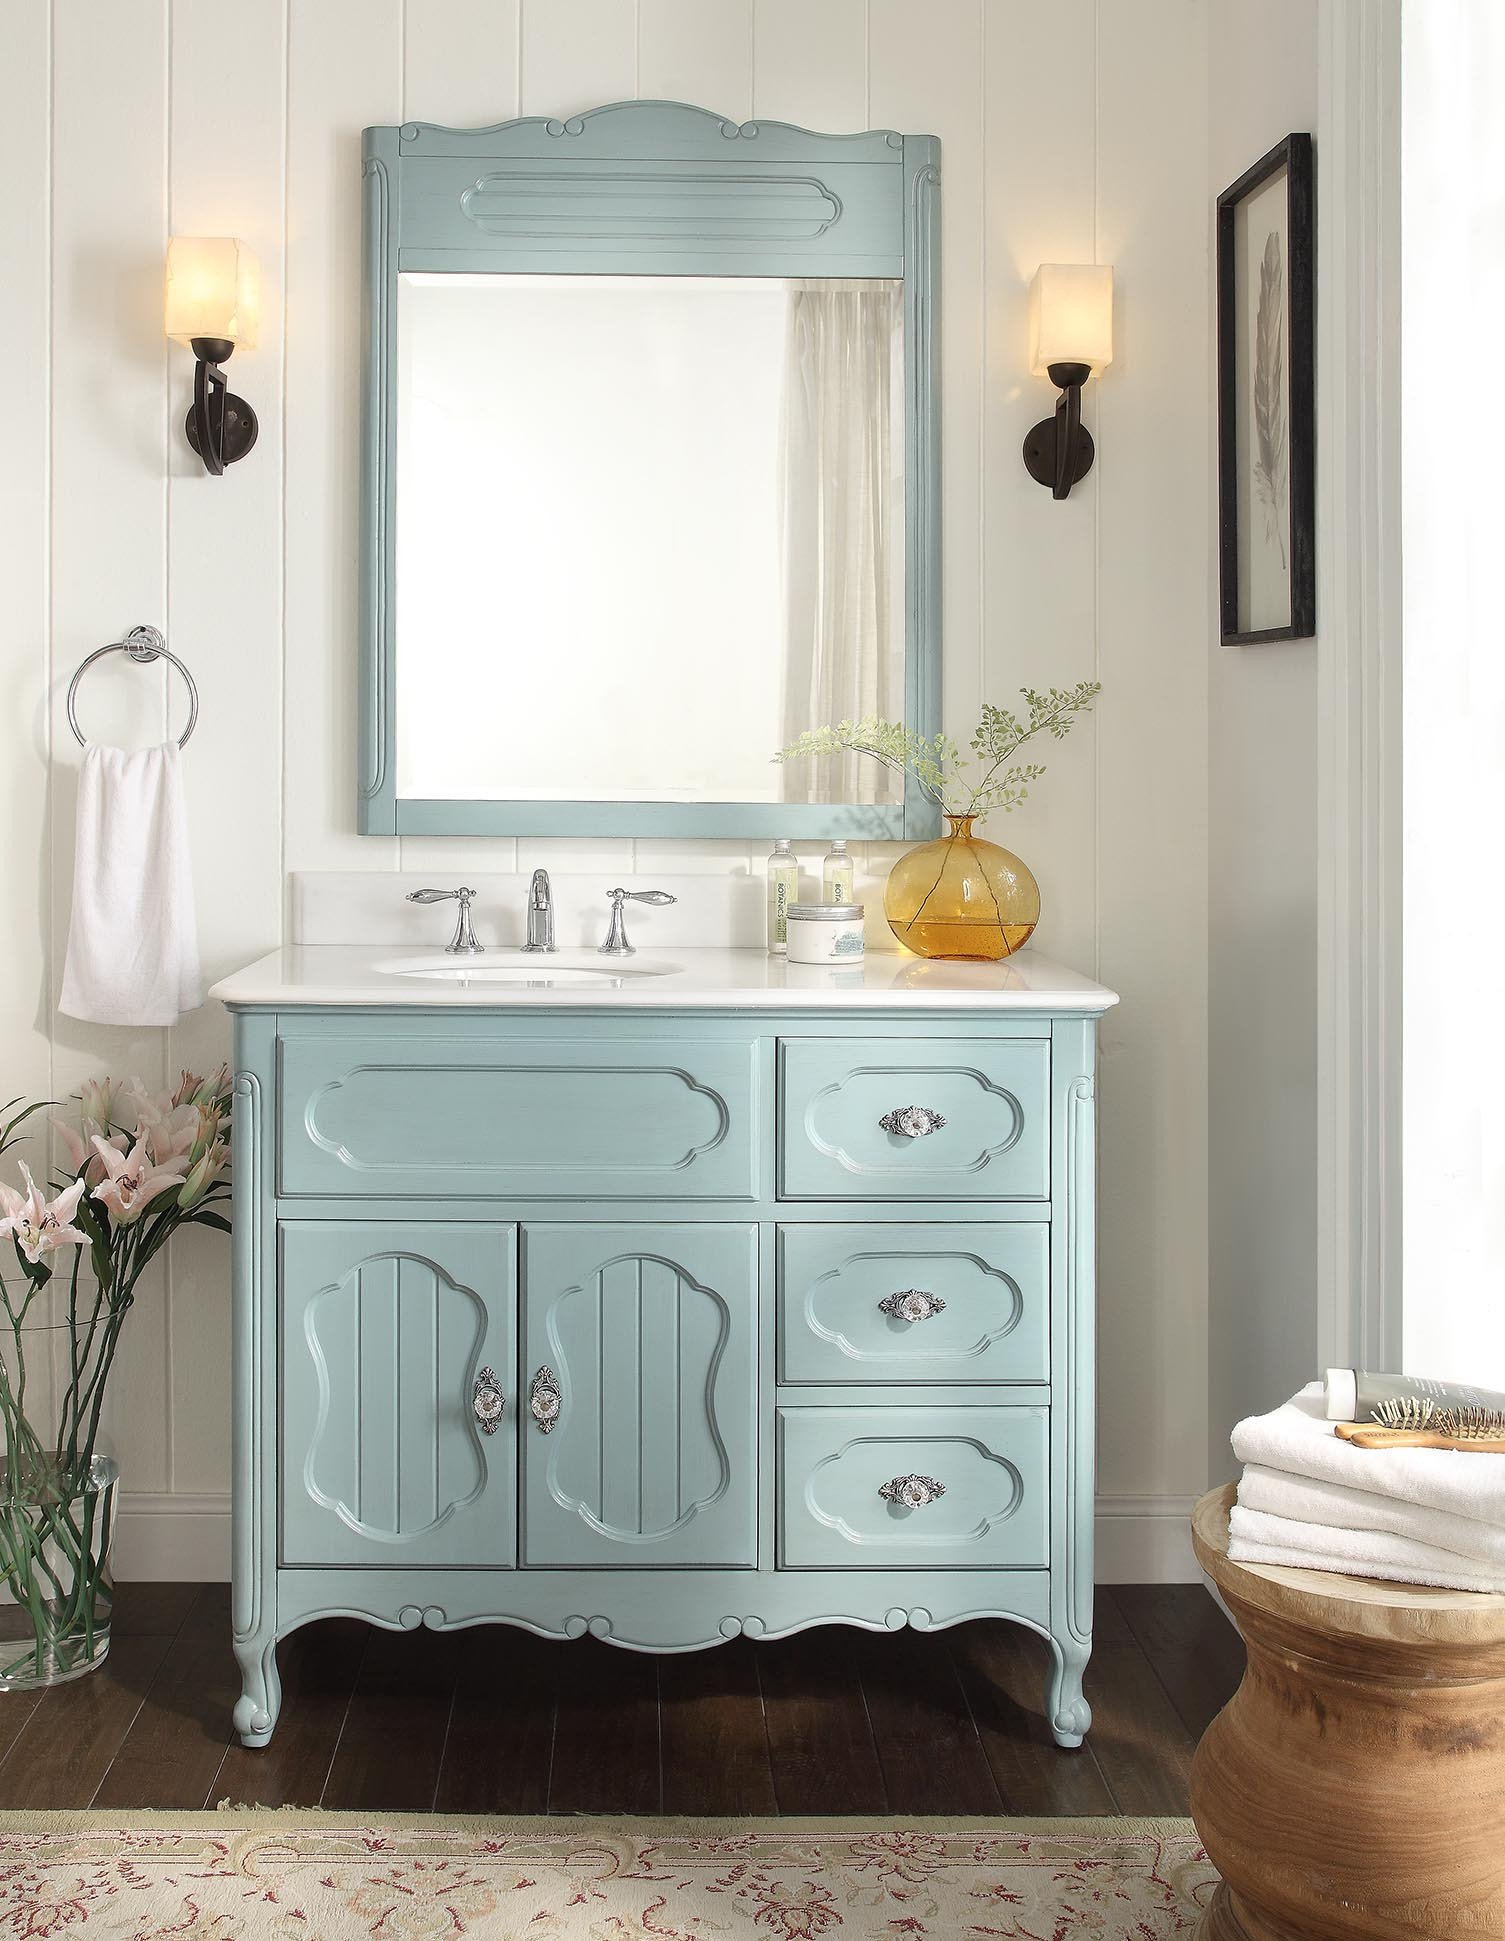 42 Benton Collection Knoxville Vintage Blue Victorian Shabby Chic Bathroom Vanity With Mirror Gd 1509bu 42 Bs Mir Walmart Com Walmart Com